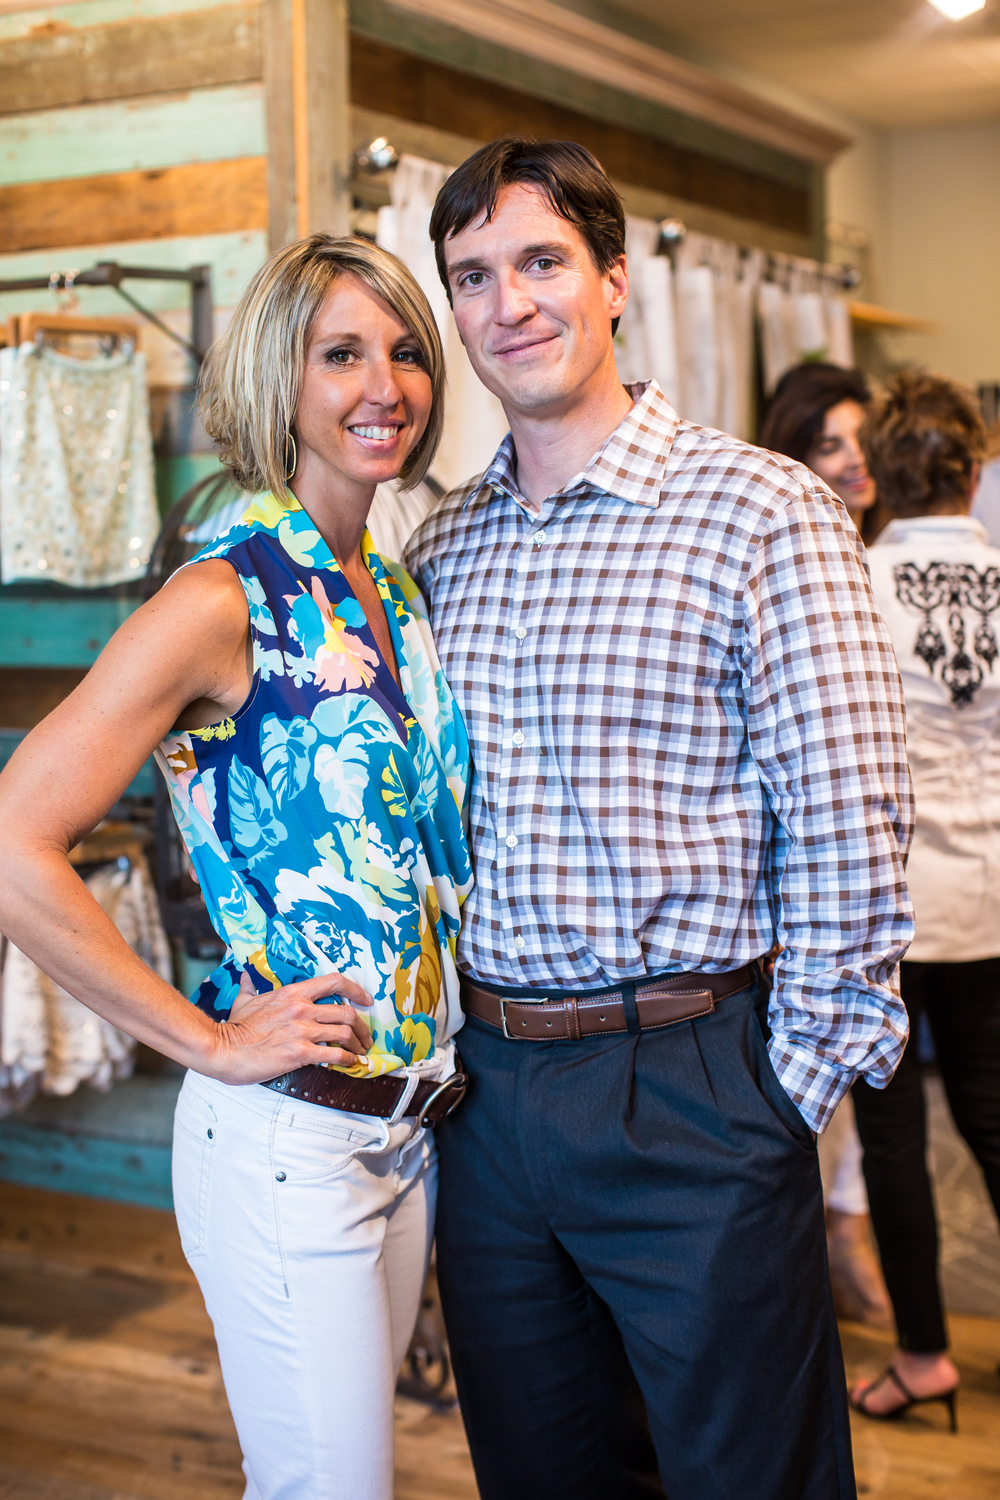 event photography austin tx suzanne covert (36 of 84).jpg